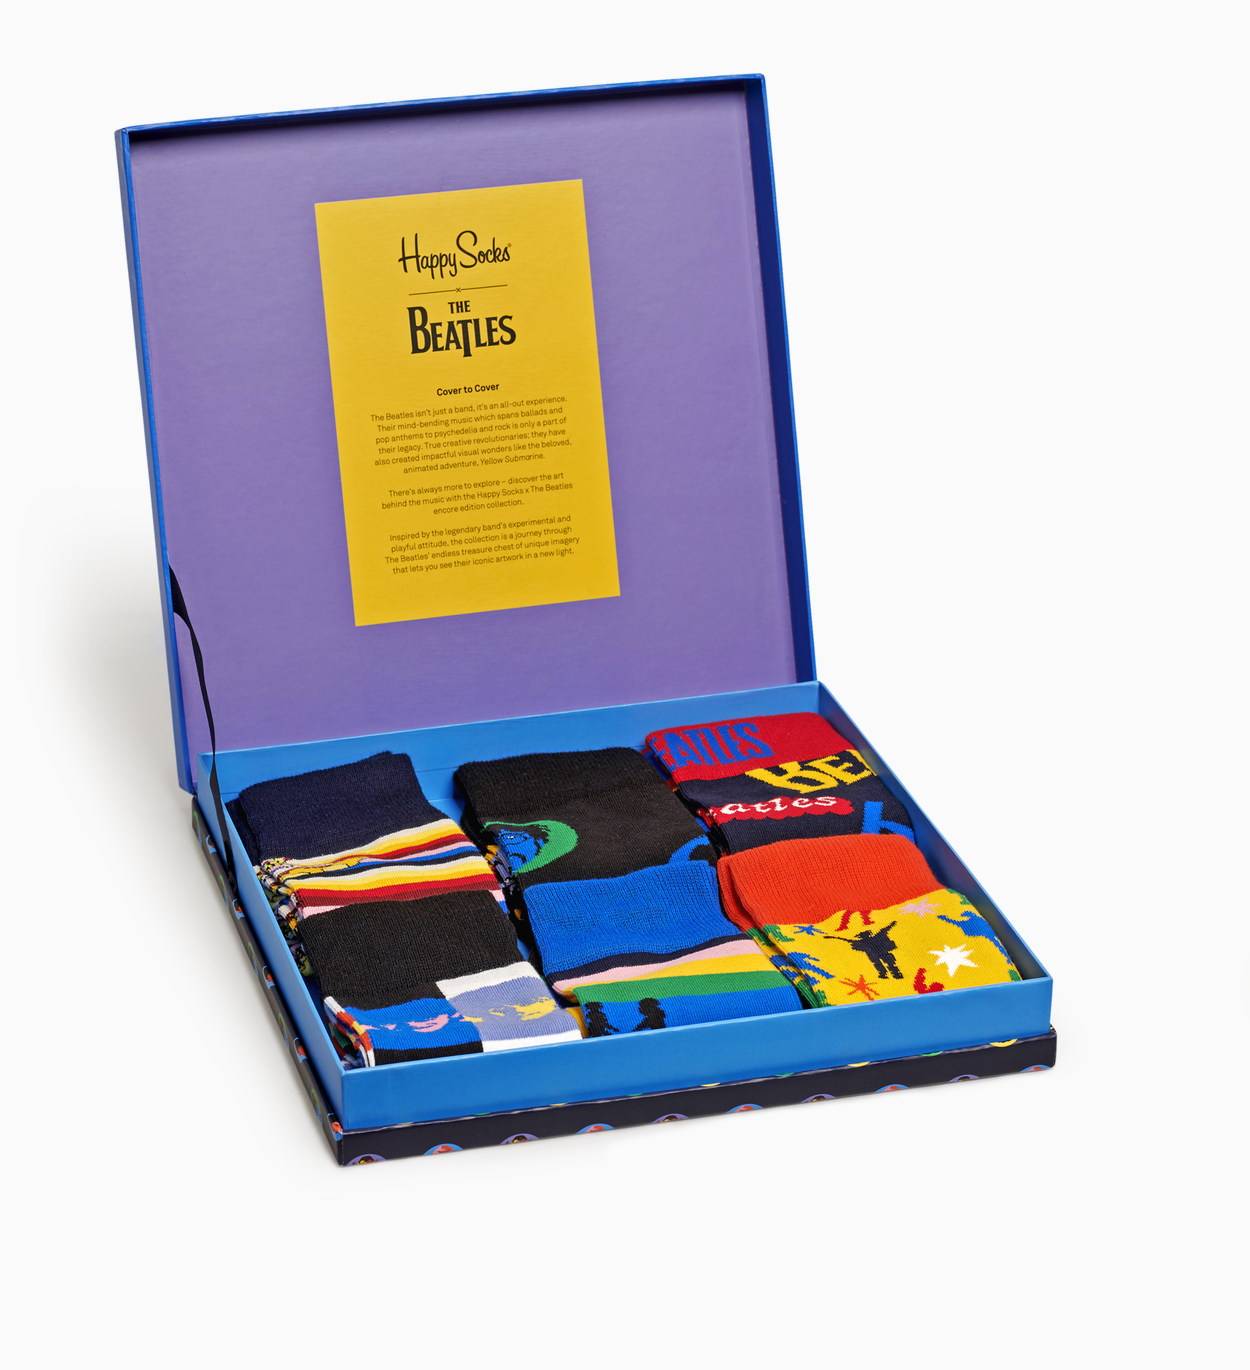 Celebrate 50 years of love with the exclusive Beatles Collectors Box. The perfect gift for fans - old and new - this special edition selection includes …